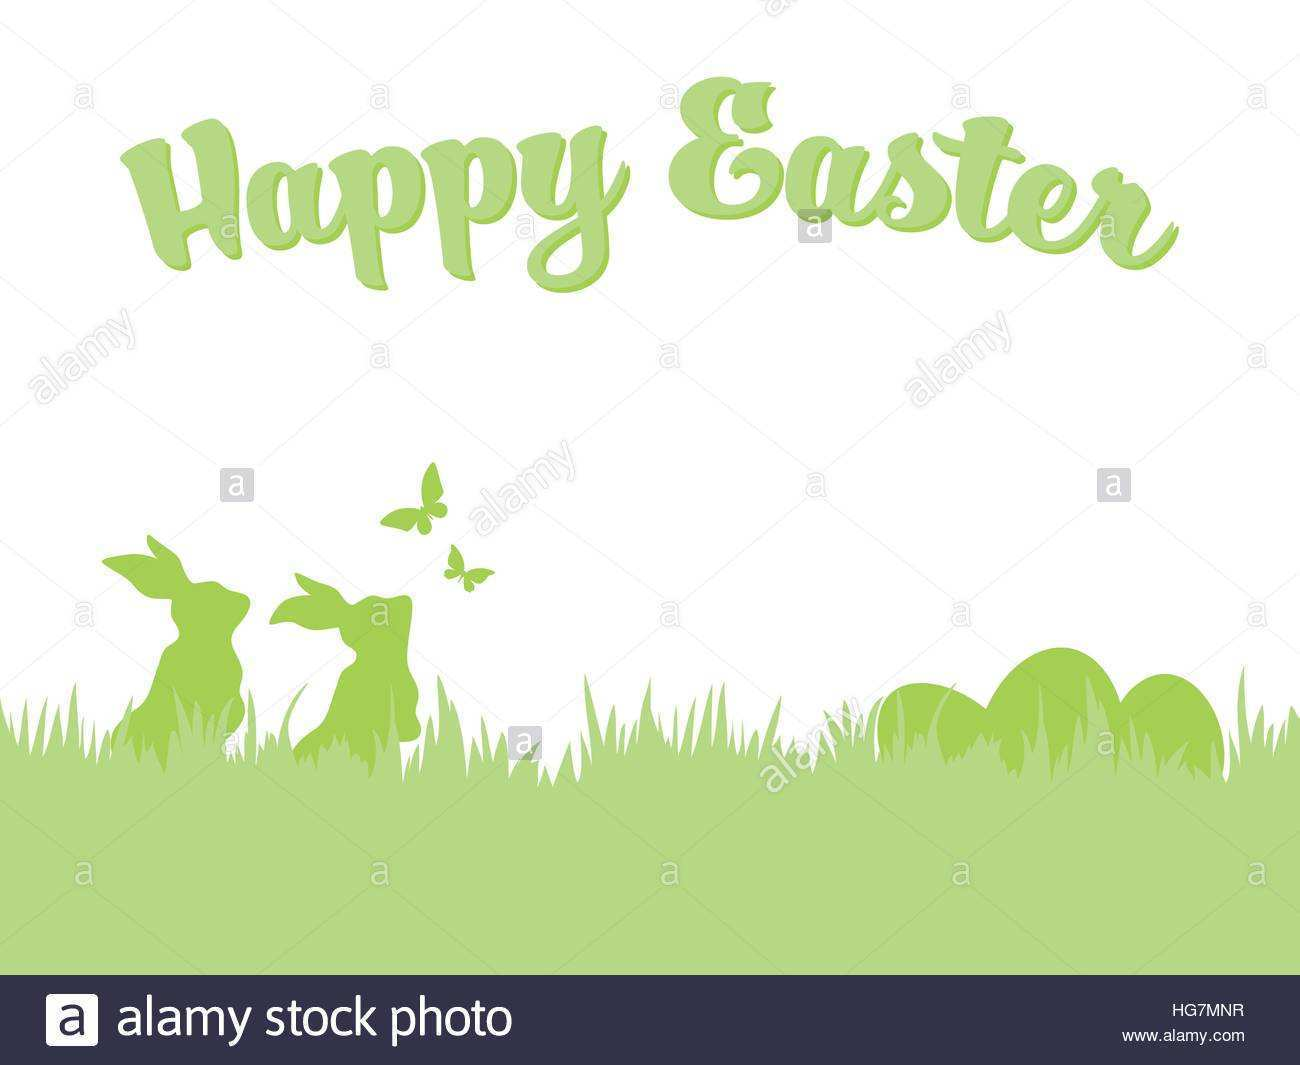 72 How To Create Easter Greeting Card Templates Layouts by Easter Greeting Card Templates